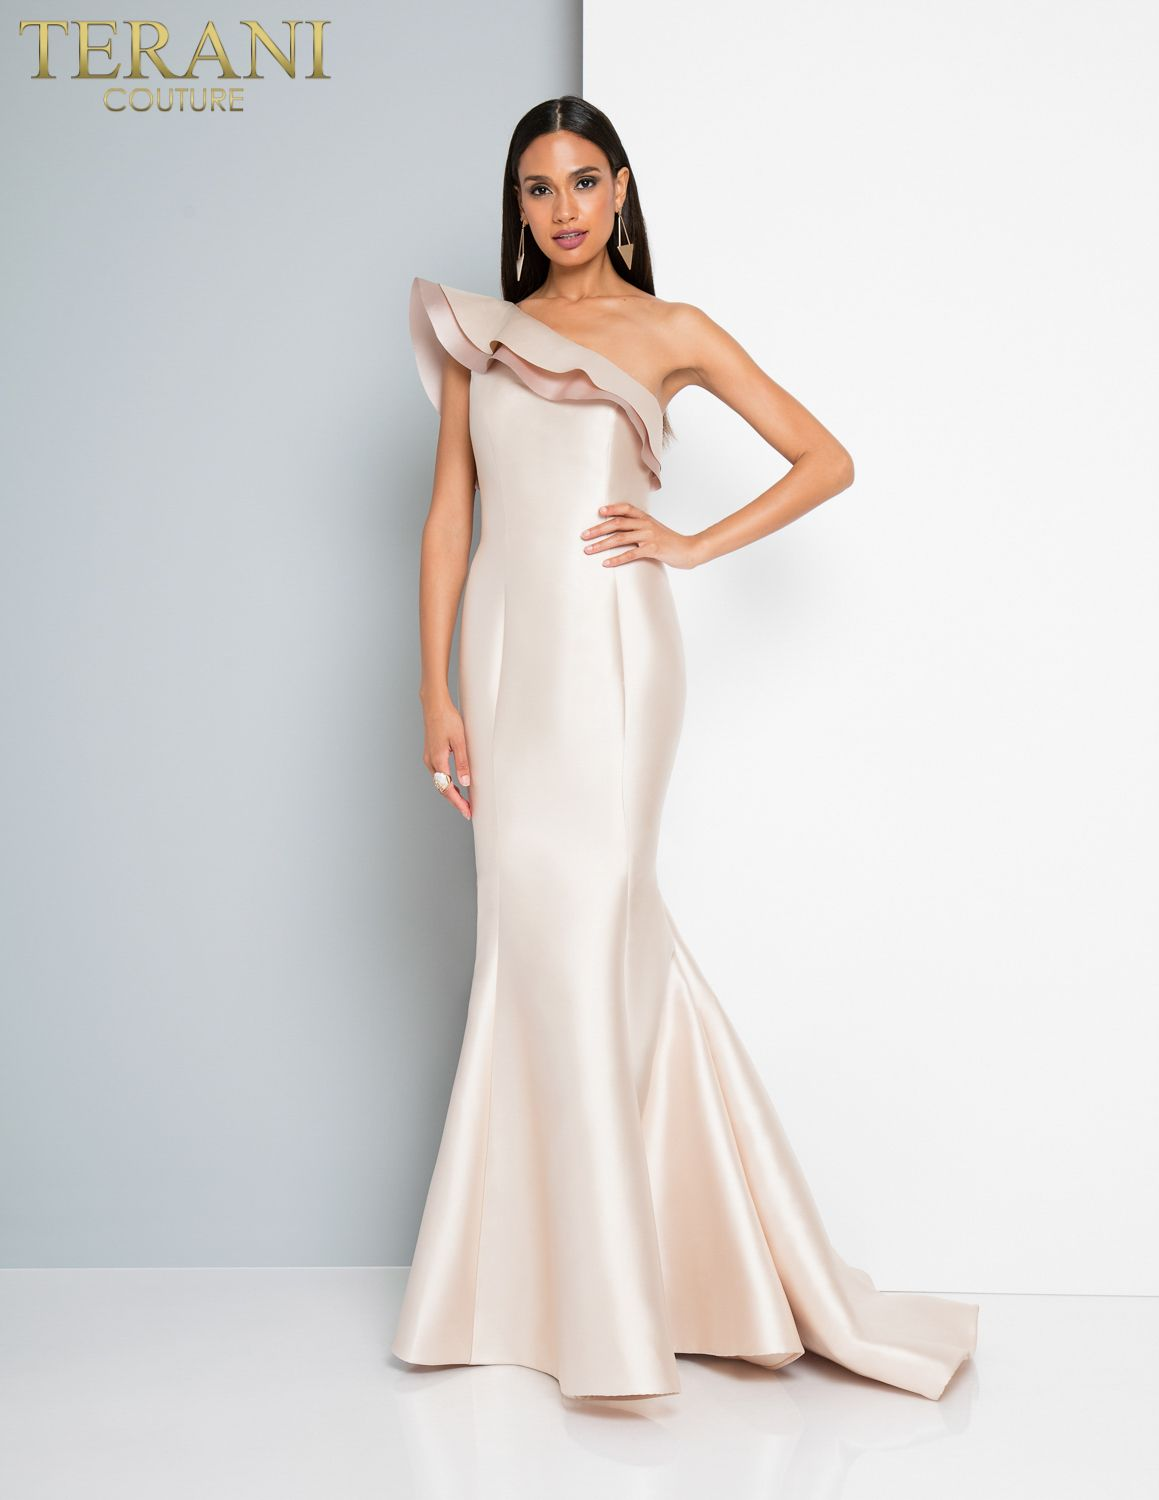 f5adf4daed2d Terani Couture Blush Ivory Fitted mermaid one shoulder dramatic ruffle  Ypsilon Dresses Pageant Evening Gown Miss America Miss USA Ypsilon Dresses  Prom ...